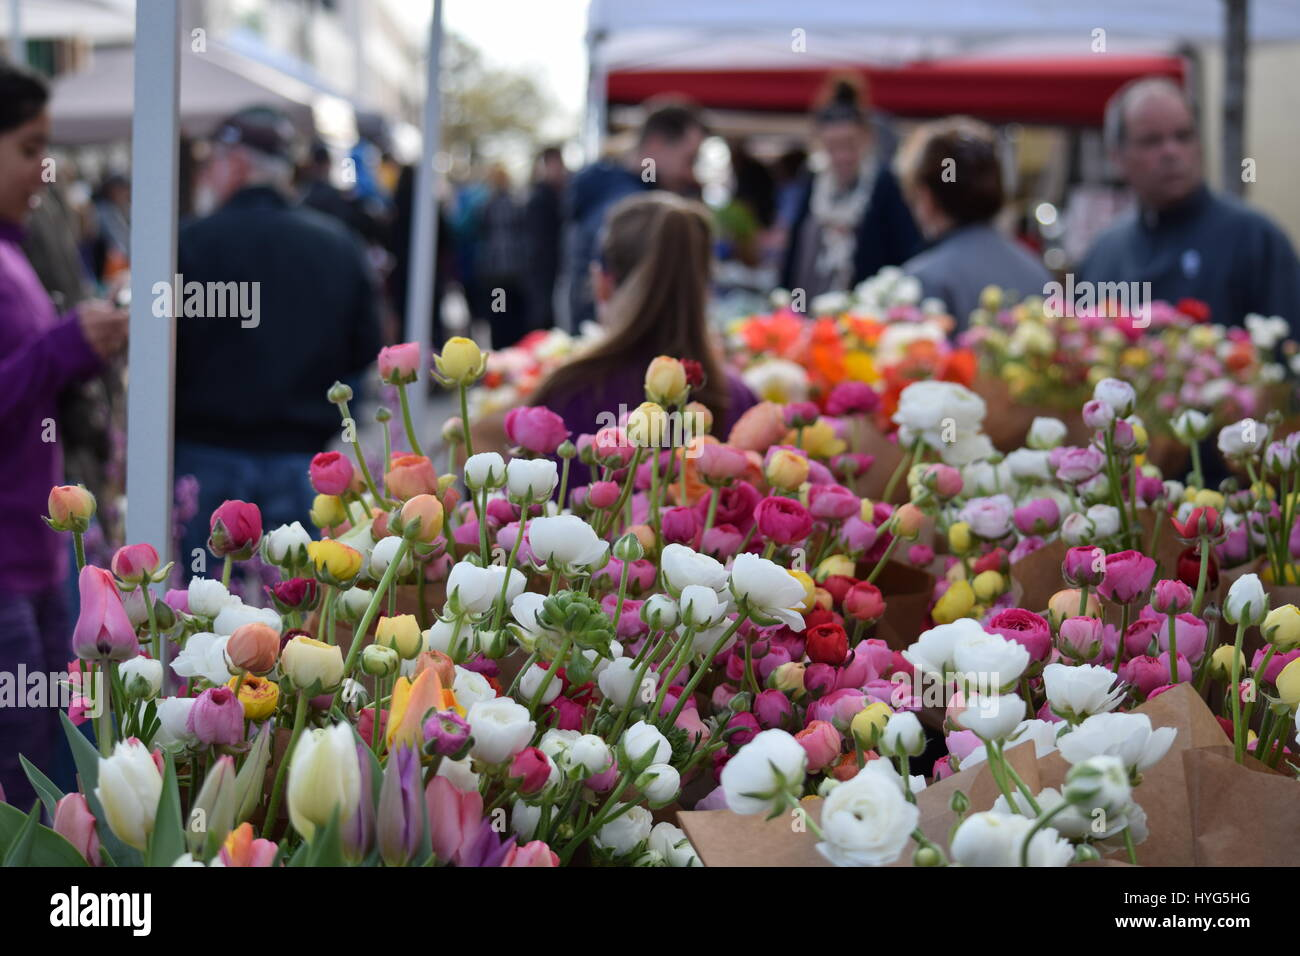 Farmer's Market Flowers - Stock Image